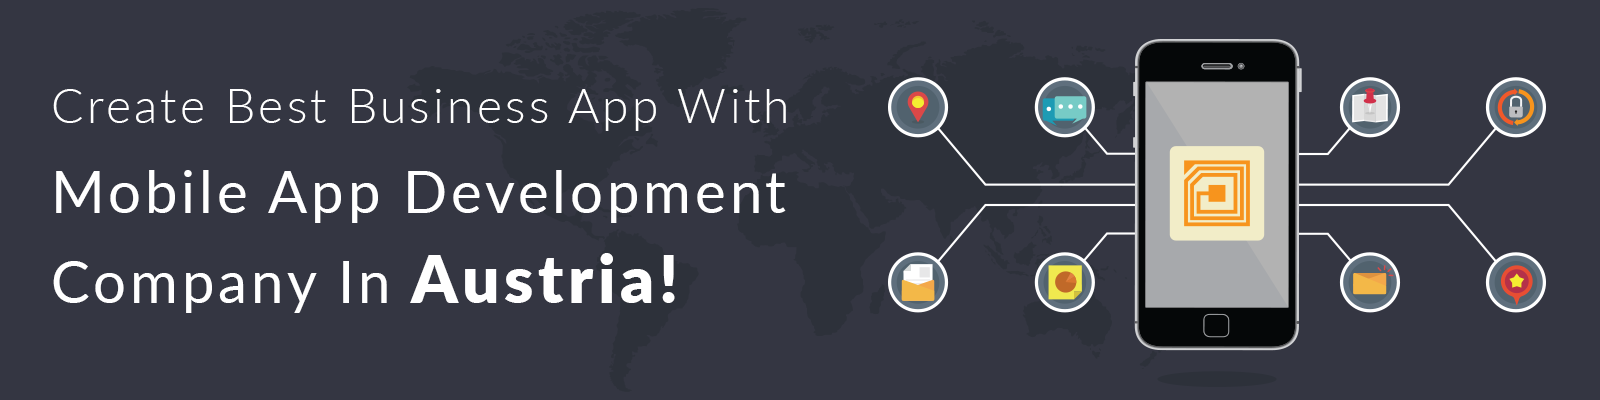 mobile app development company austria